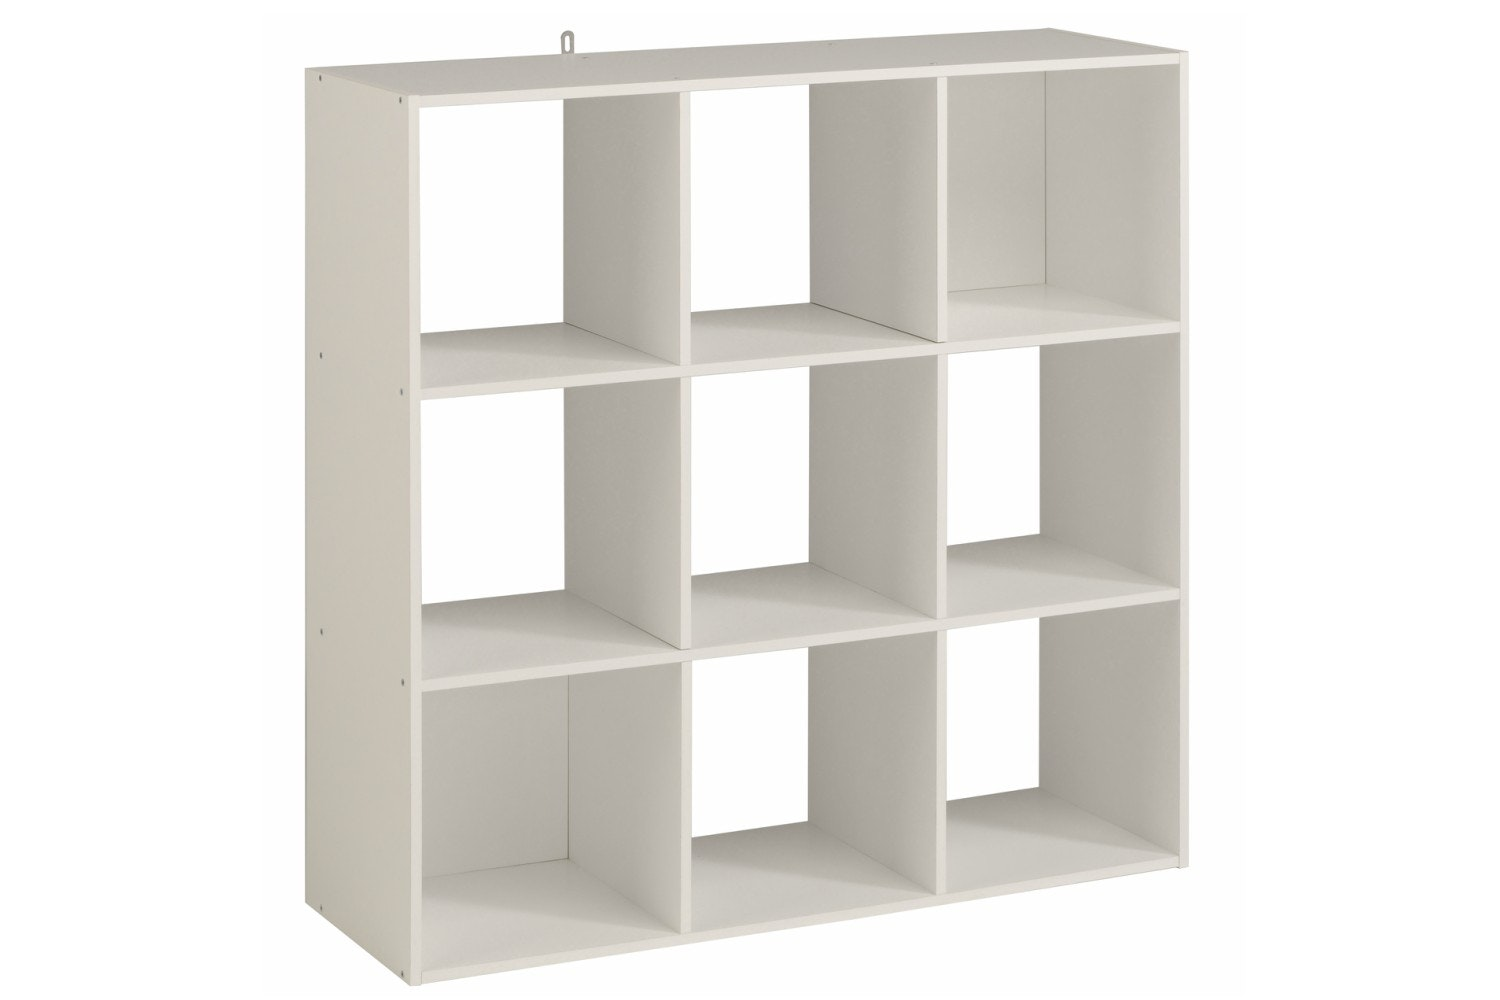 Kubikub 9 Cube Square Storage | White ...  sc 1 st  Harvey Norman & Kubikub 9 Cube Square Storage | White | Ireland